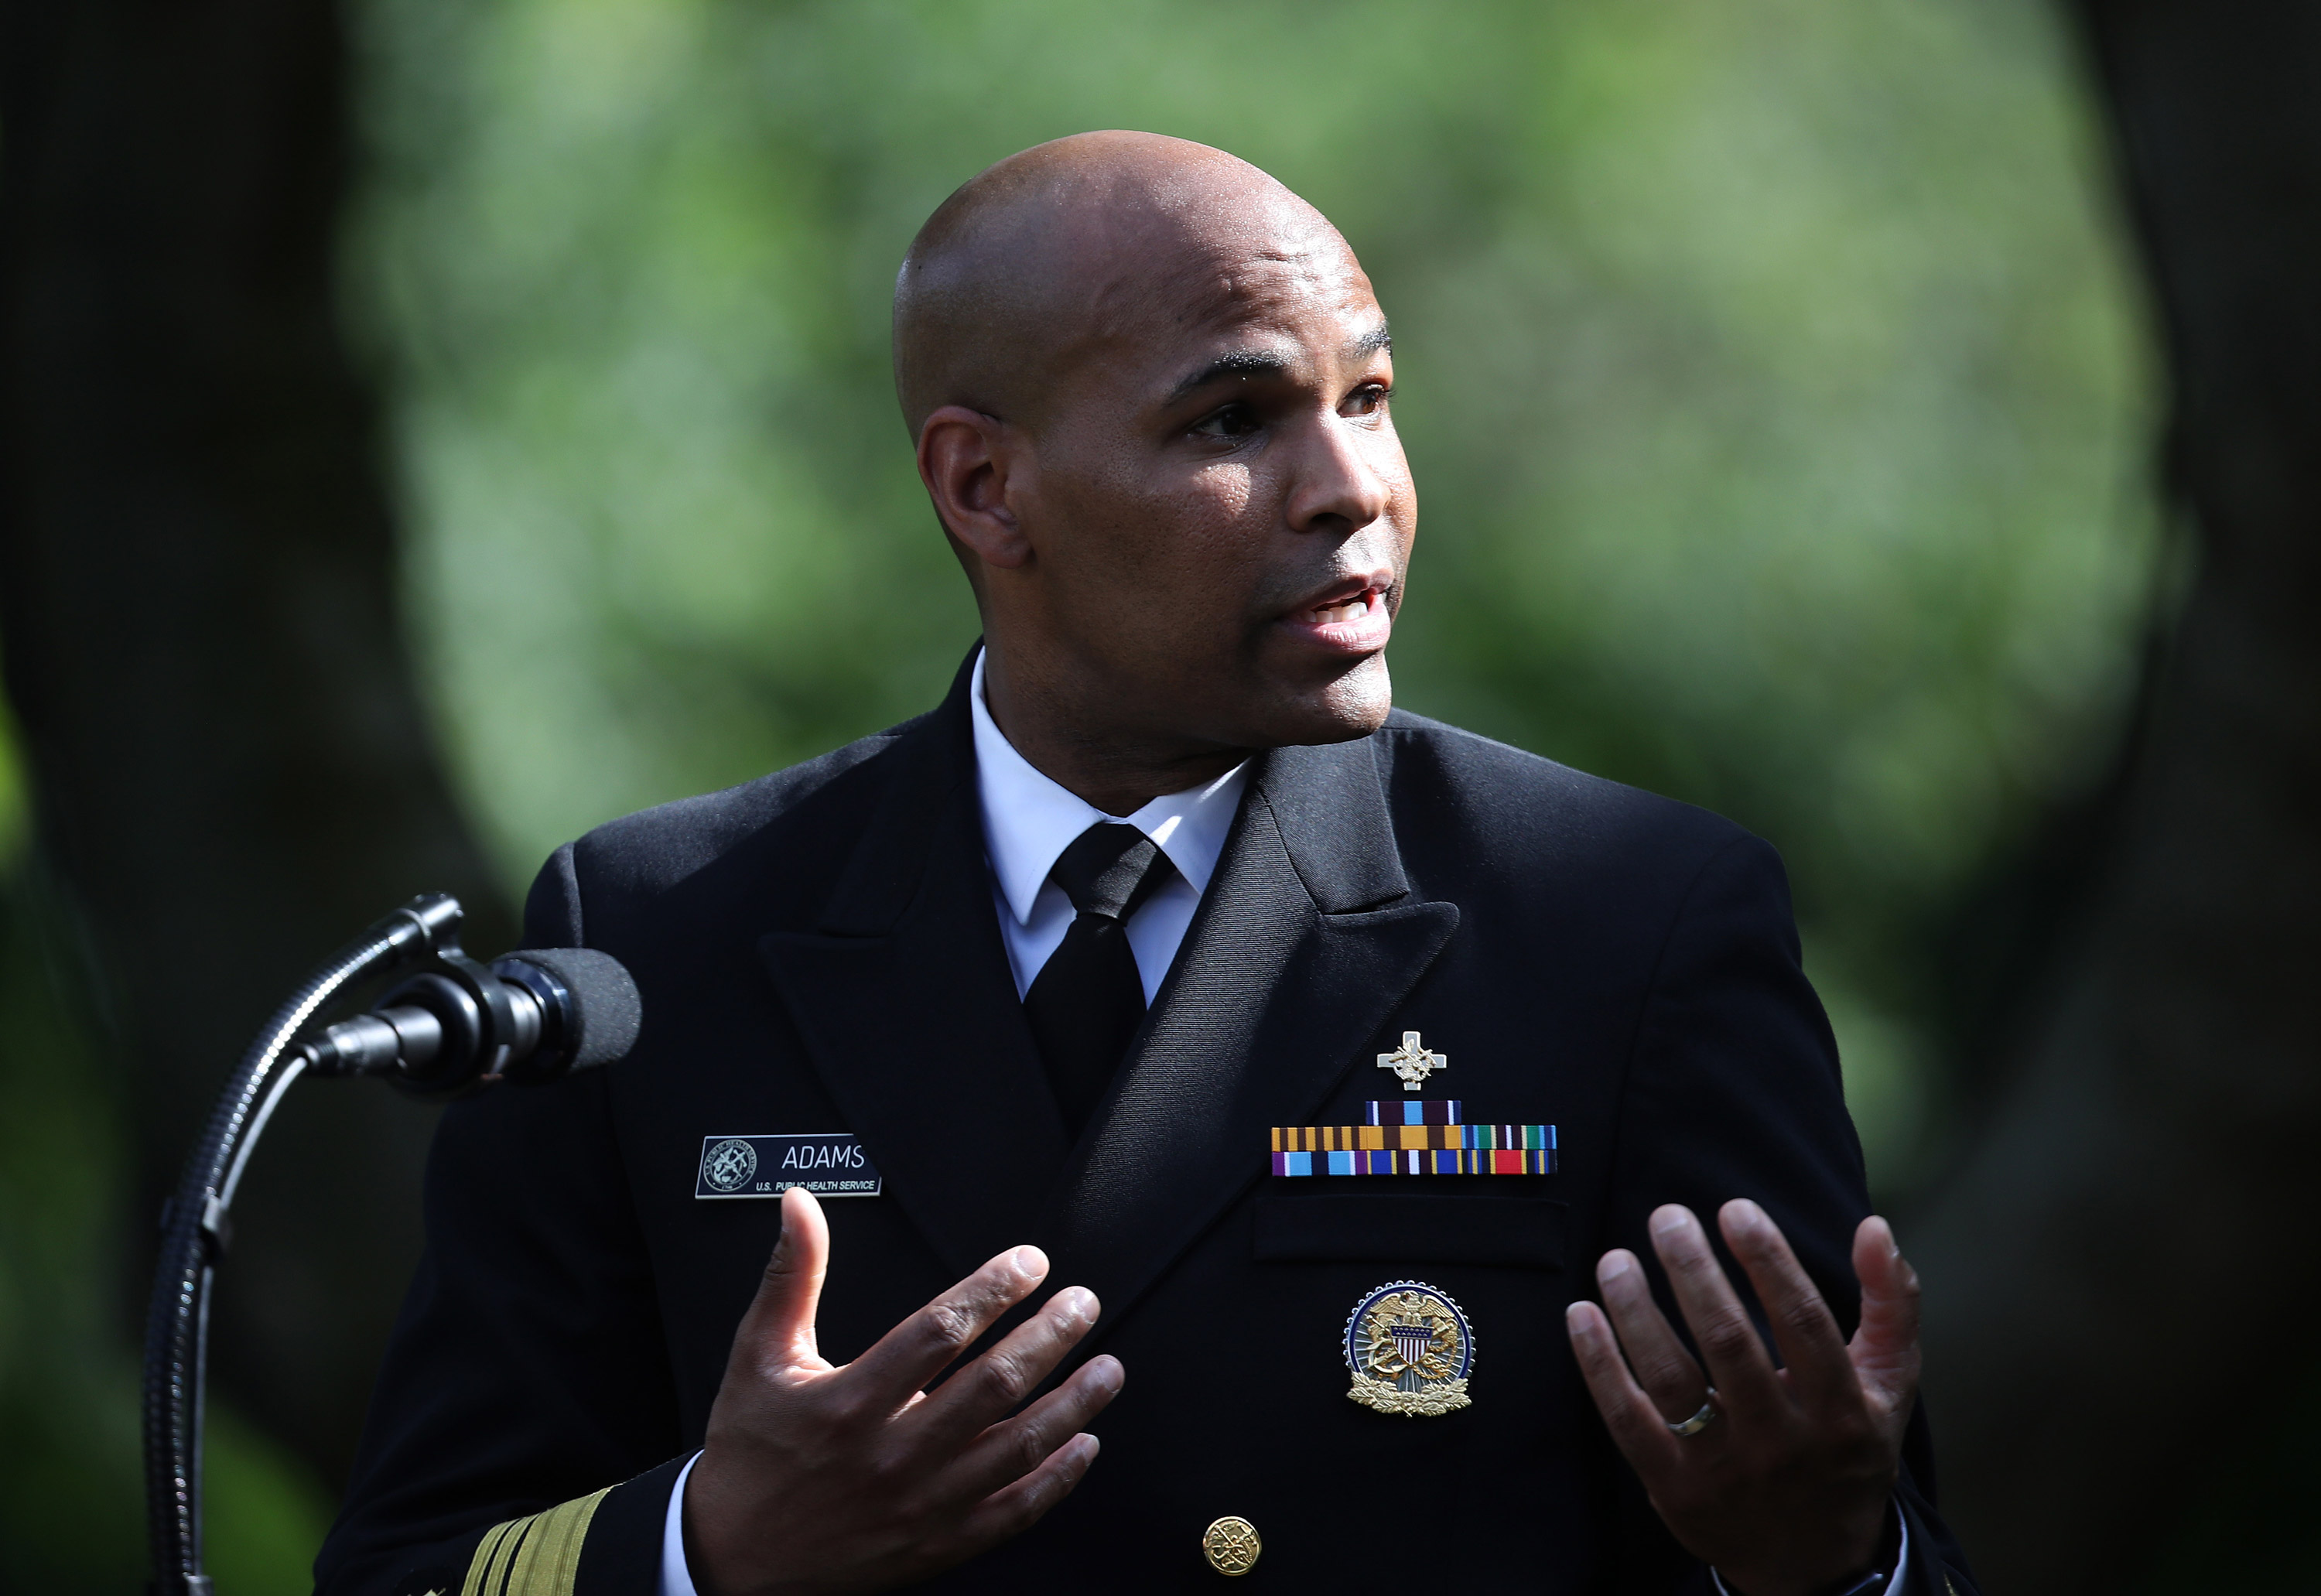 U.S. Surgeon General Jerome Adams speaks during an event in the Rose Garden at the White House on May 26 in Washington.